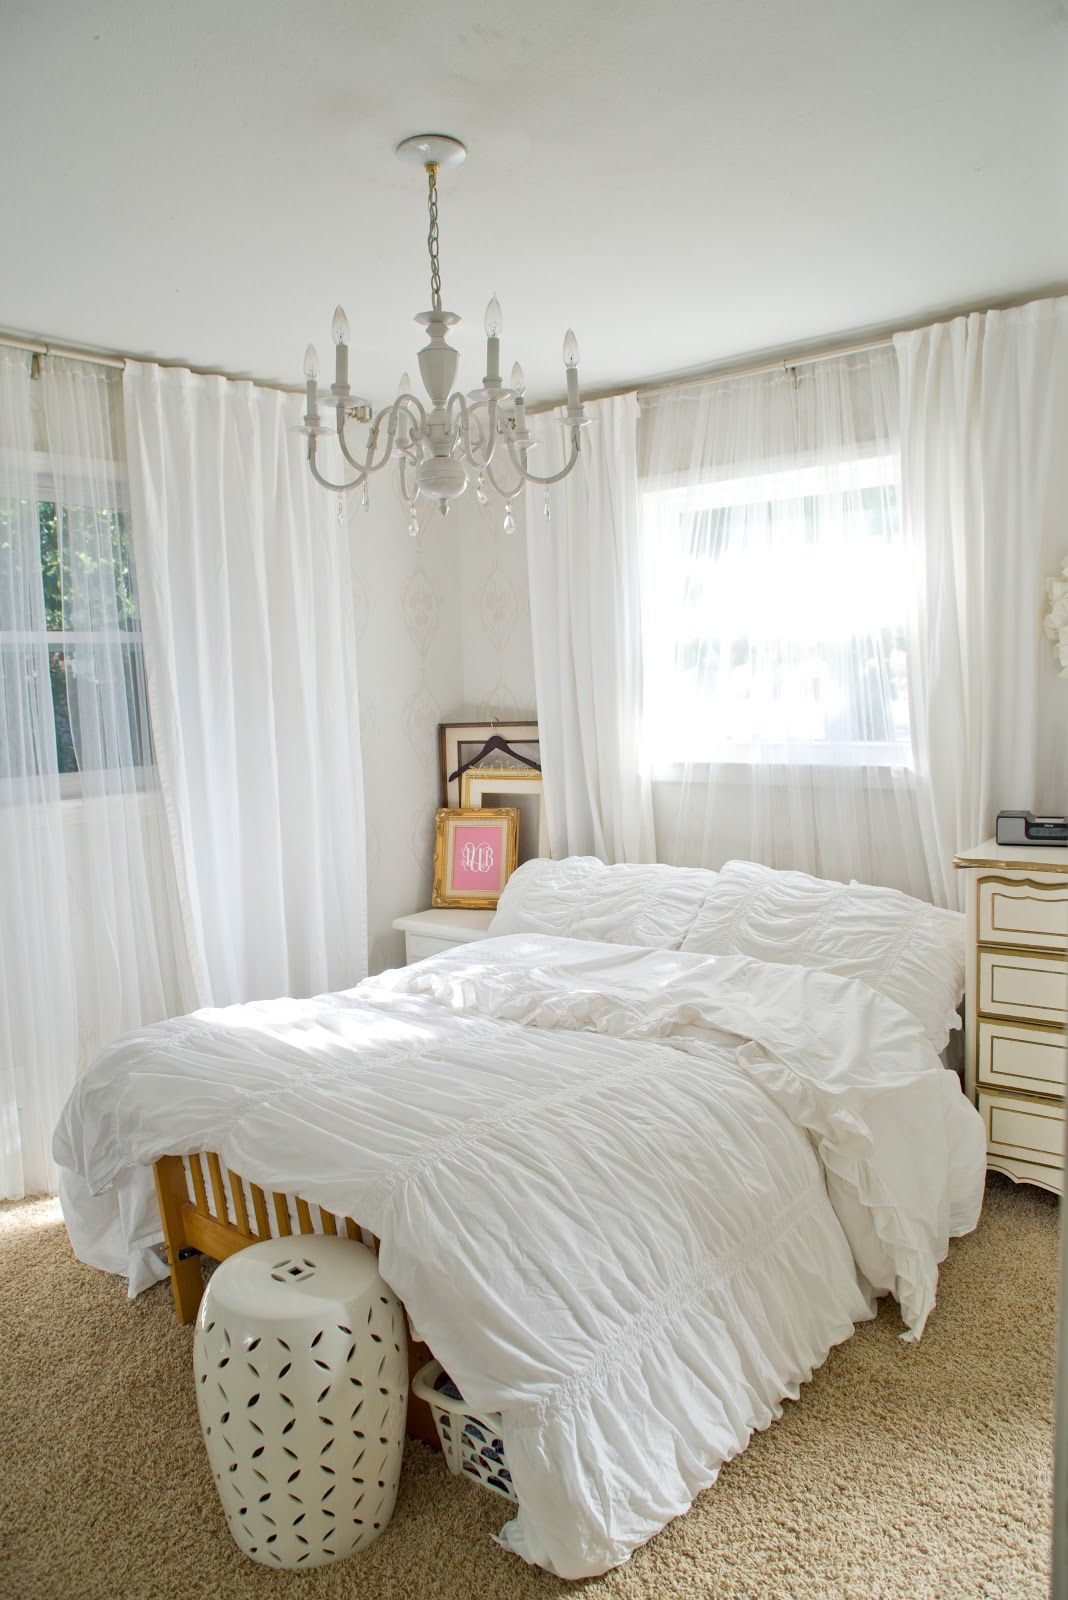 All White Bedroom With Chandelier And Curtains Romantic Faint